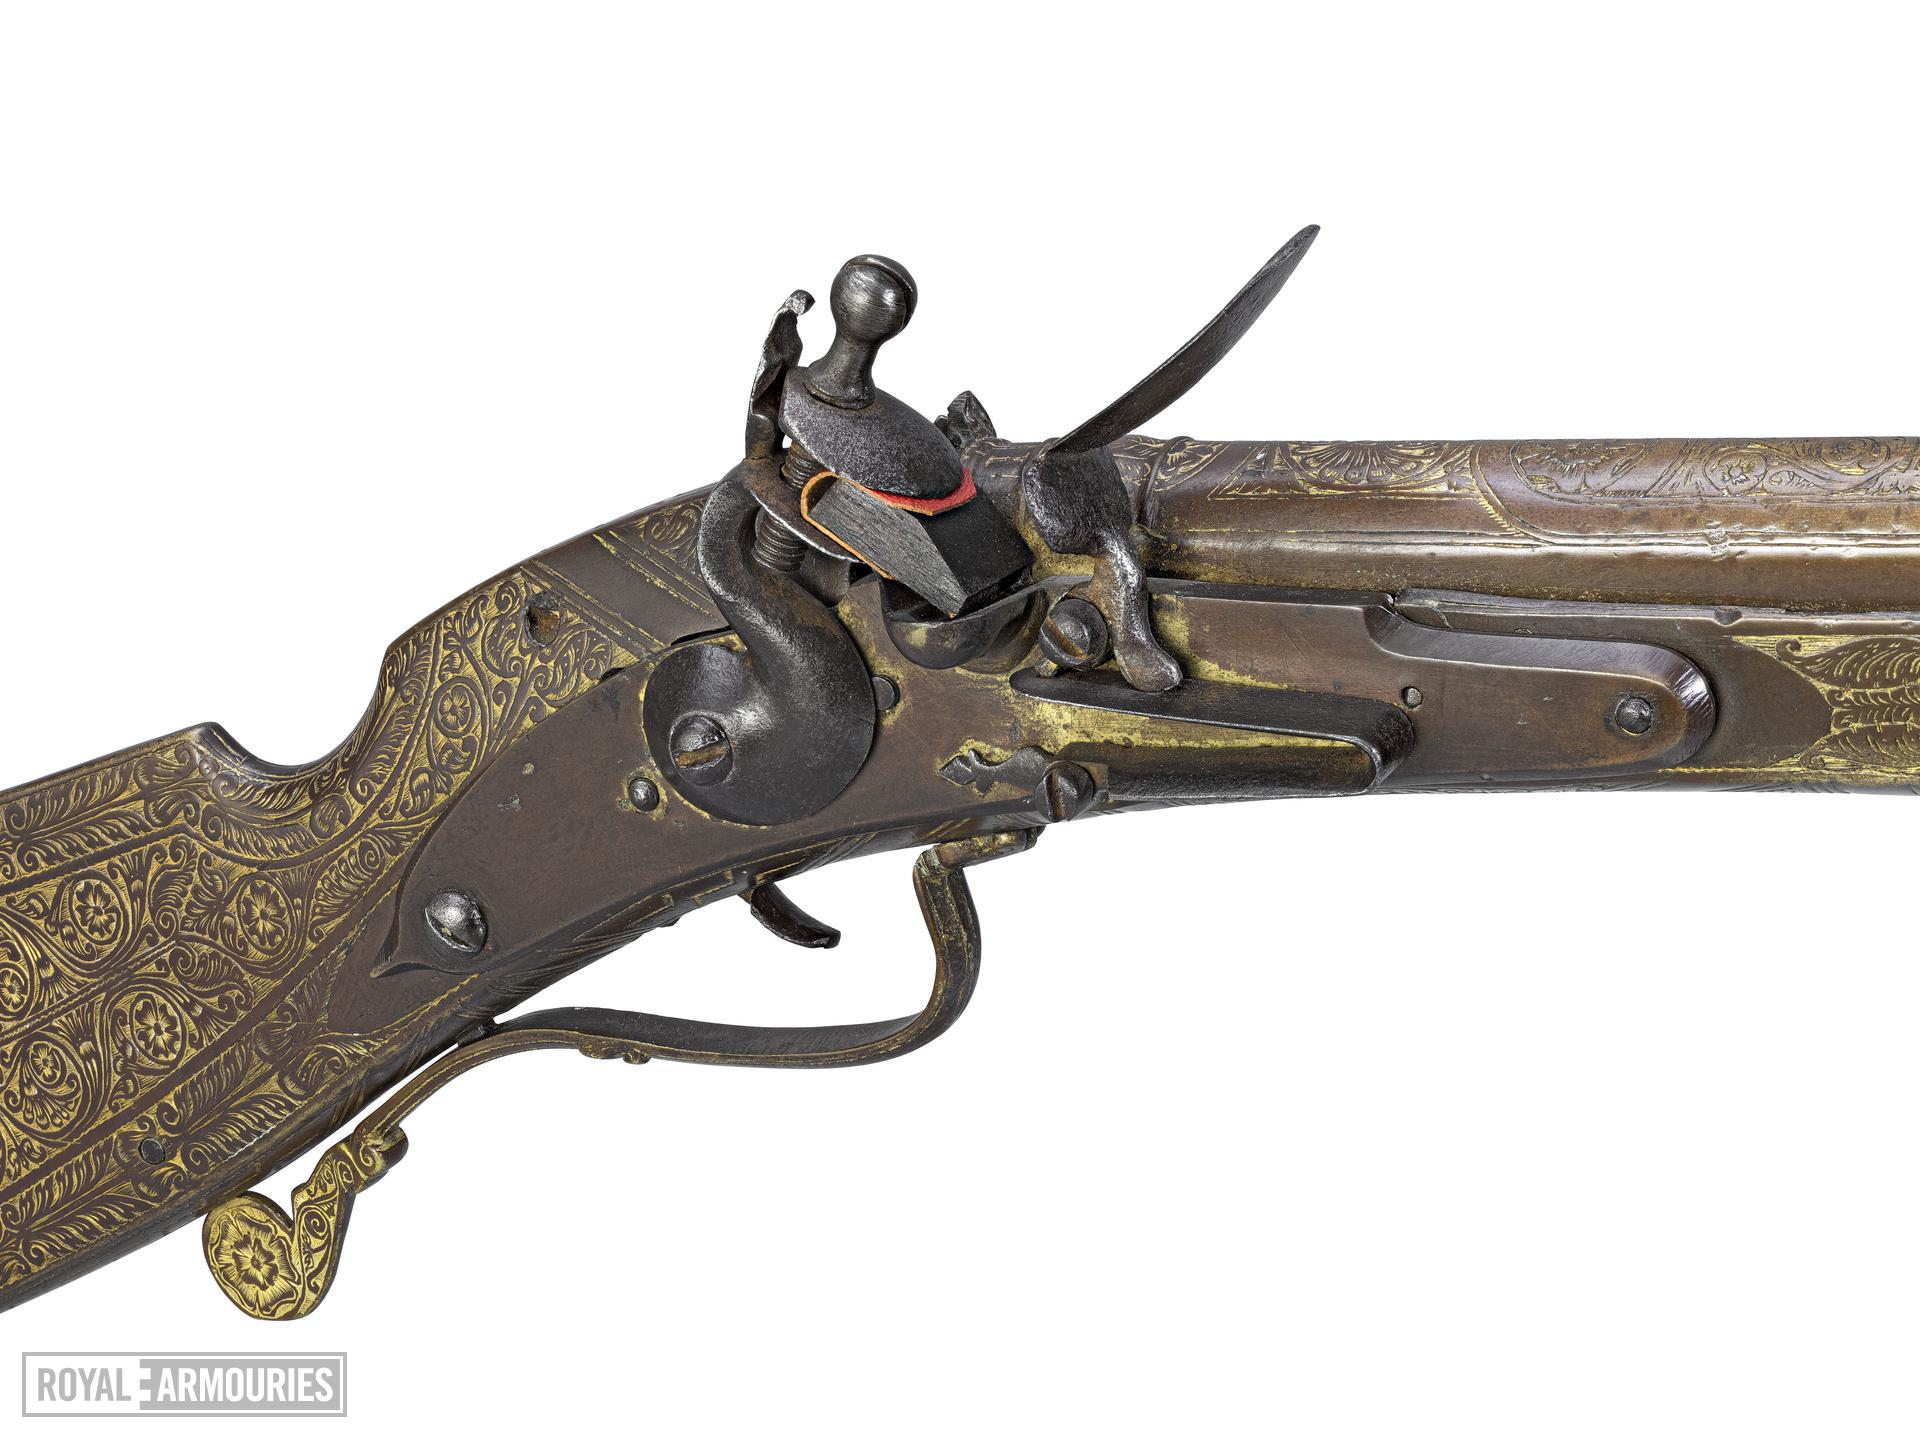 Flintlock sporting gun by James Low probably made for Charles I as Prince of Wales